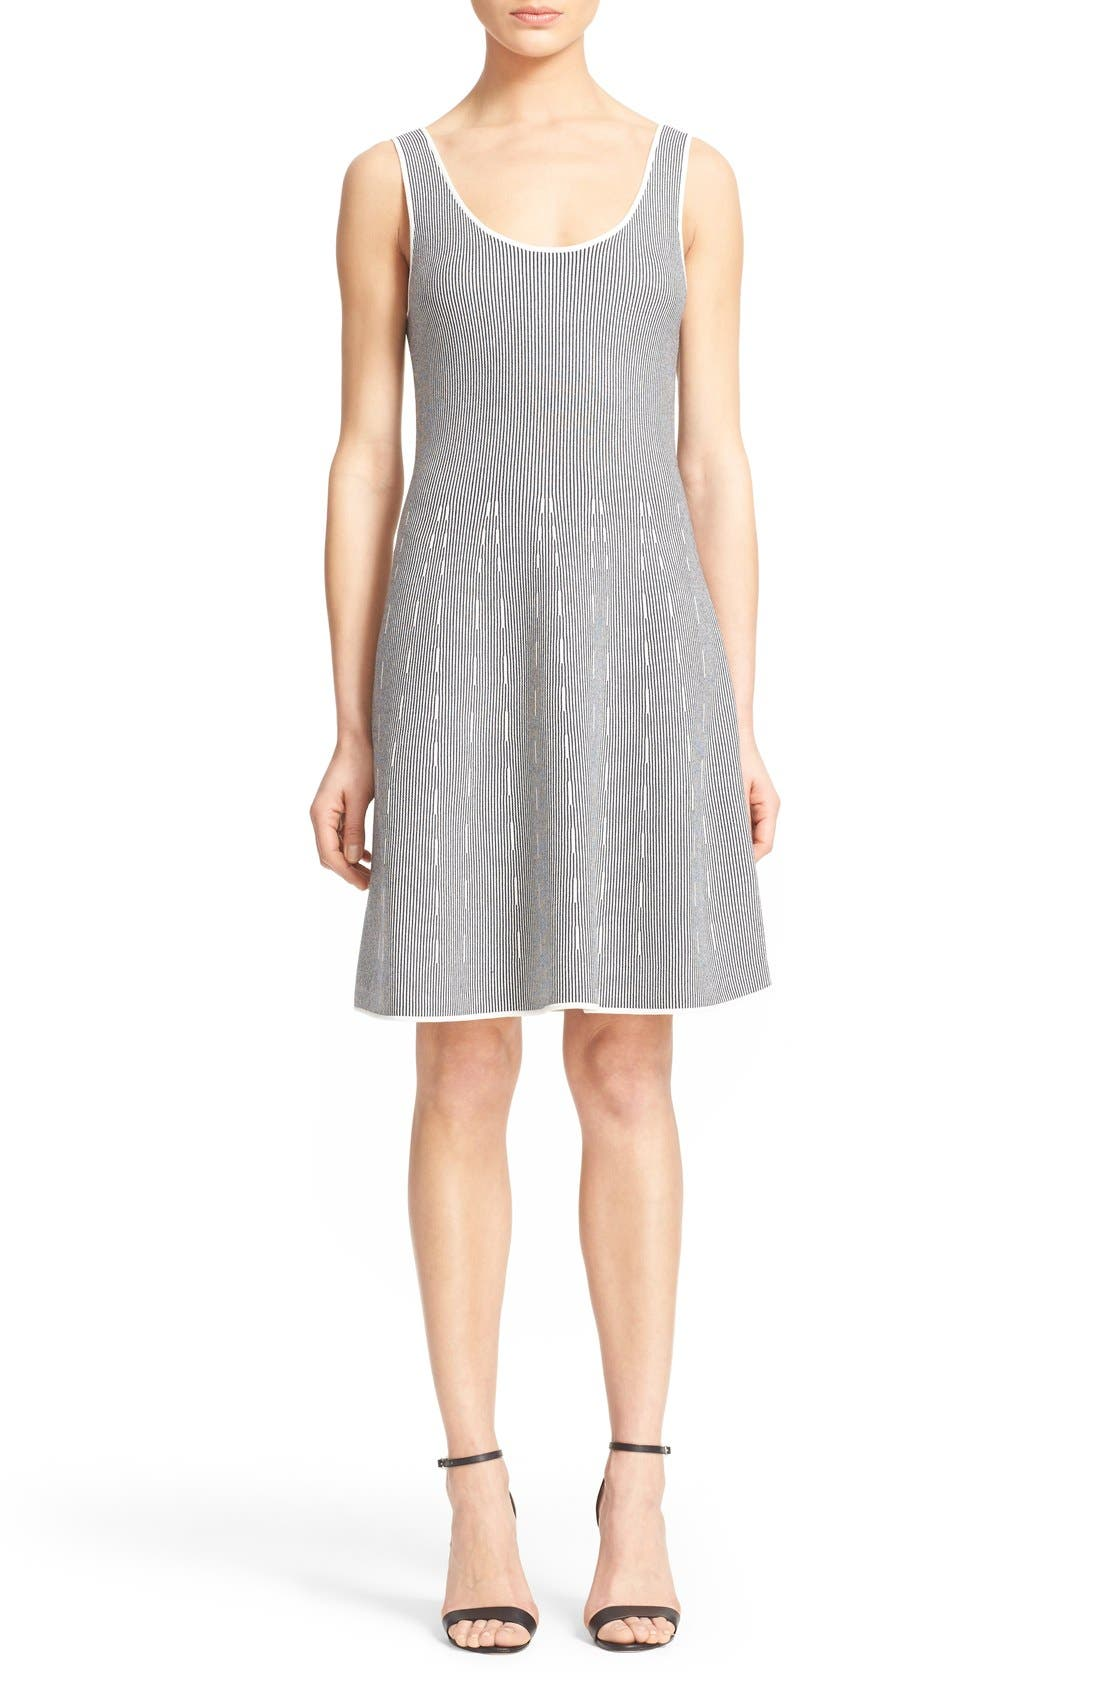 Alternate Image 1 Selected - Theory 'Codris' Knit Fit & Flare Dress